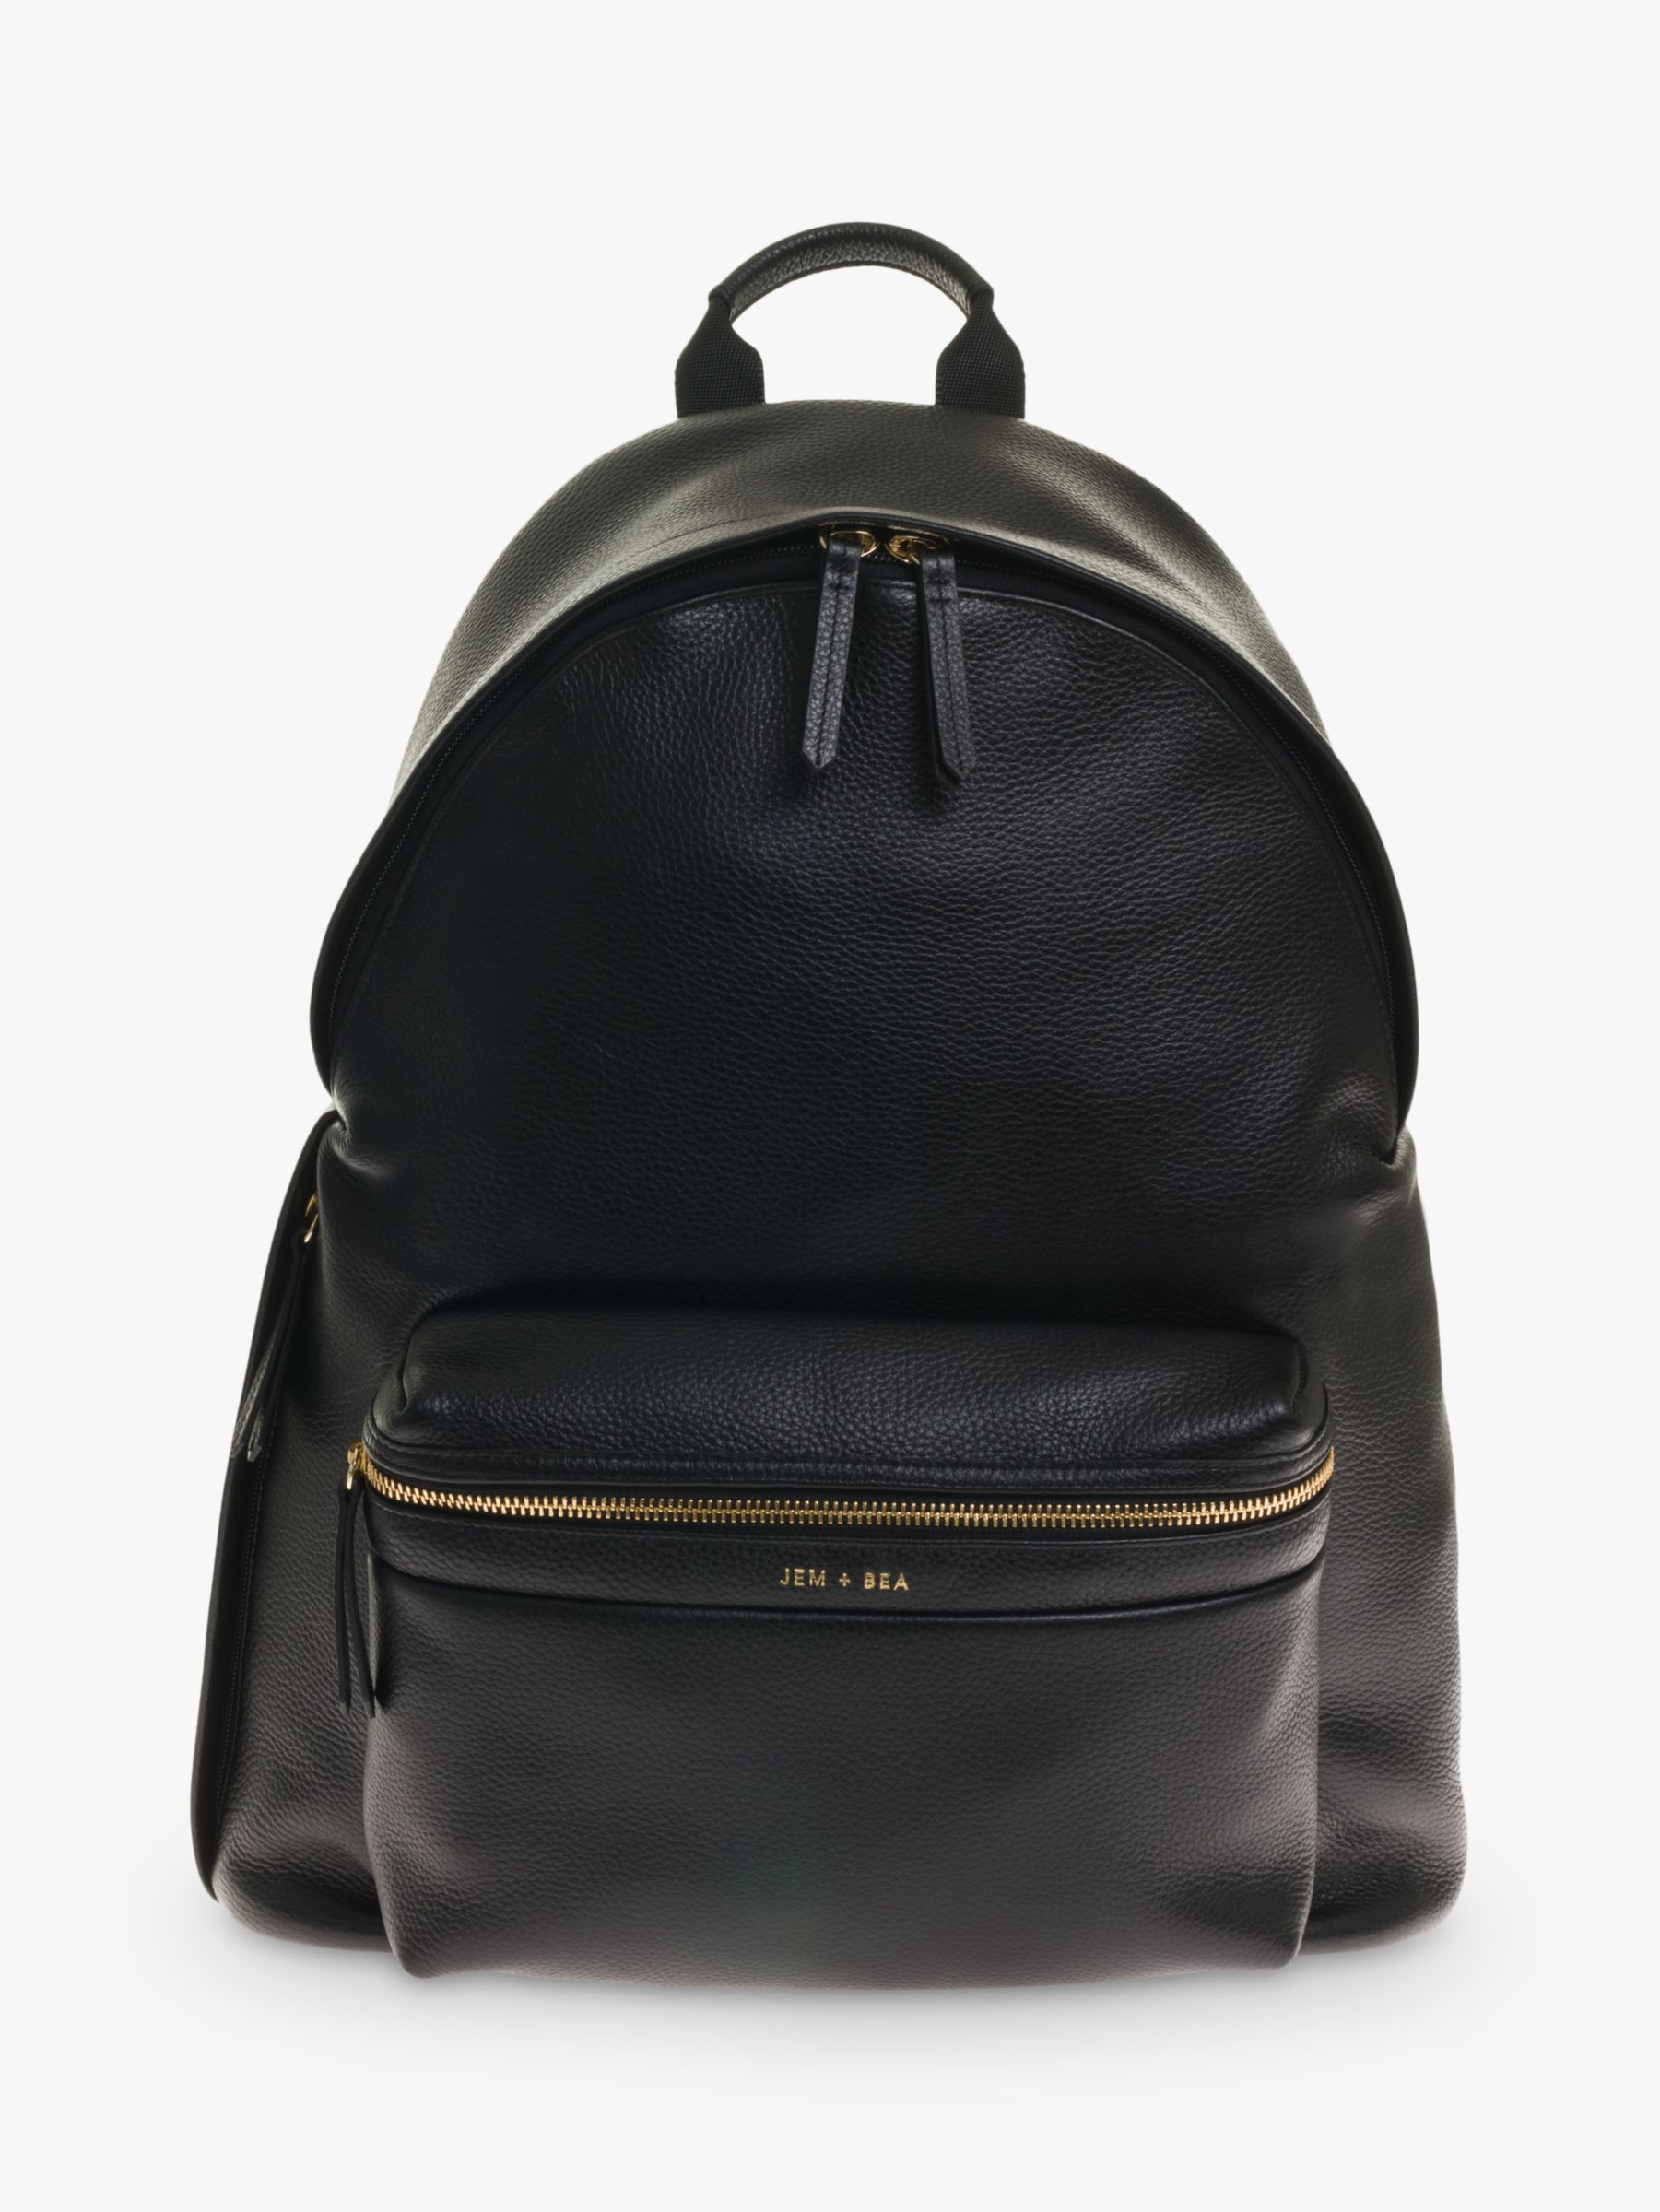 Jem + Bea JEM + BEA Jamie Leather Backpack, Black